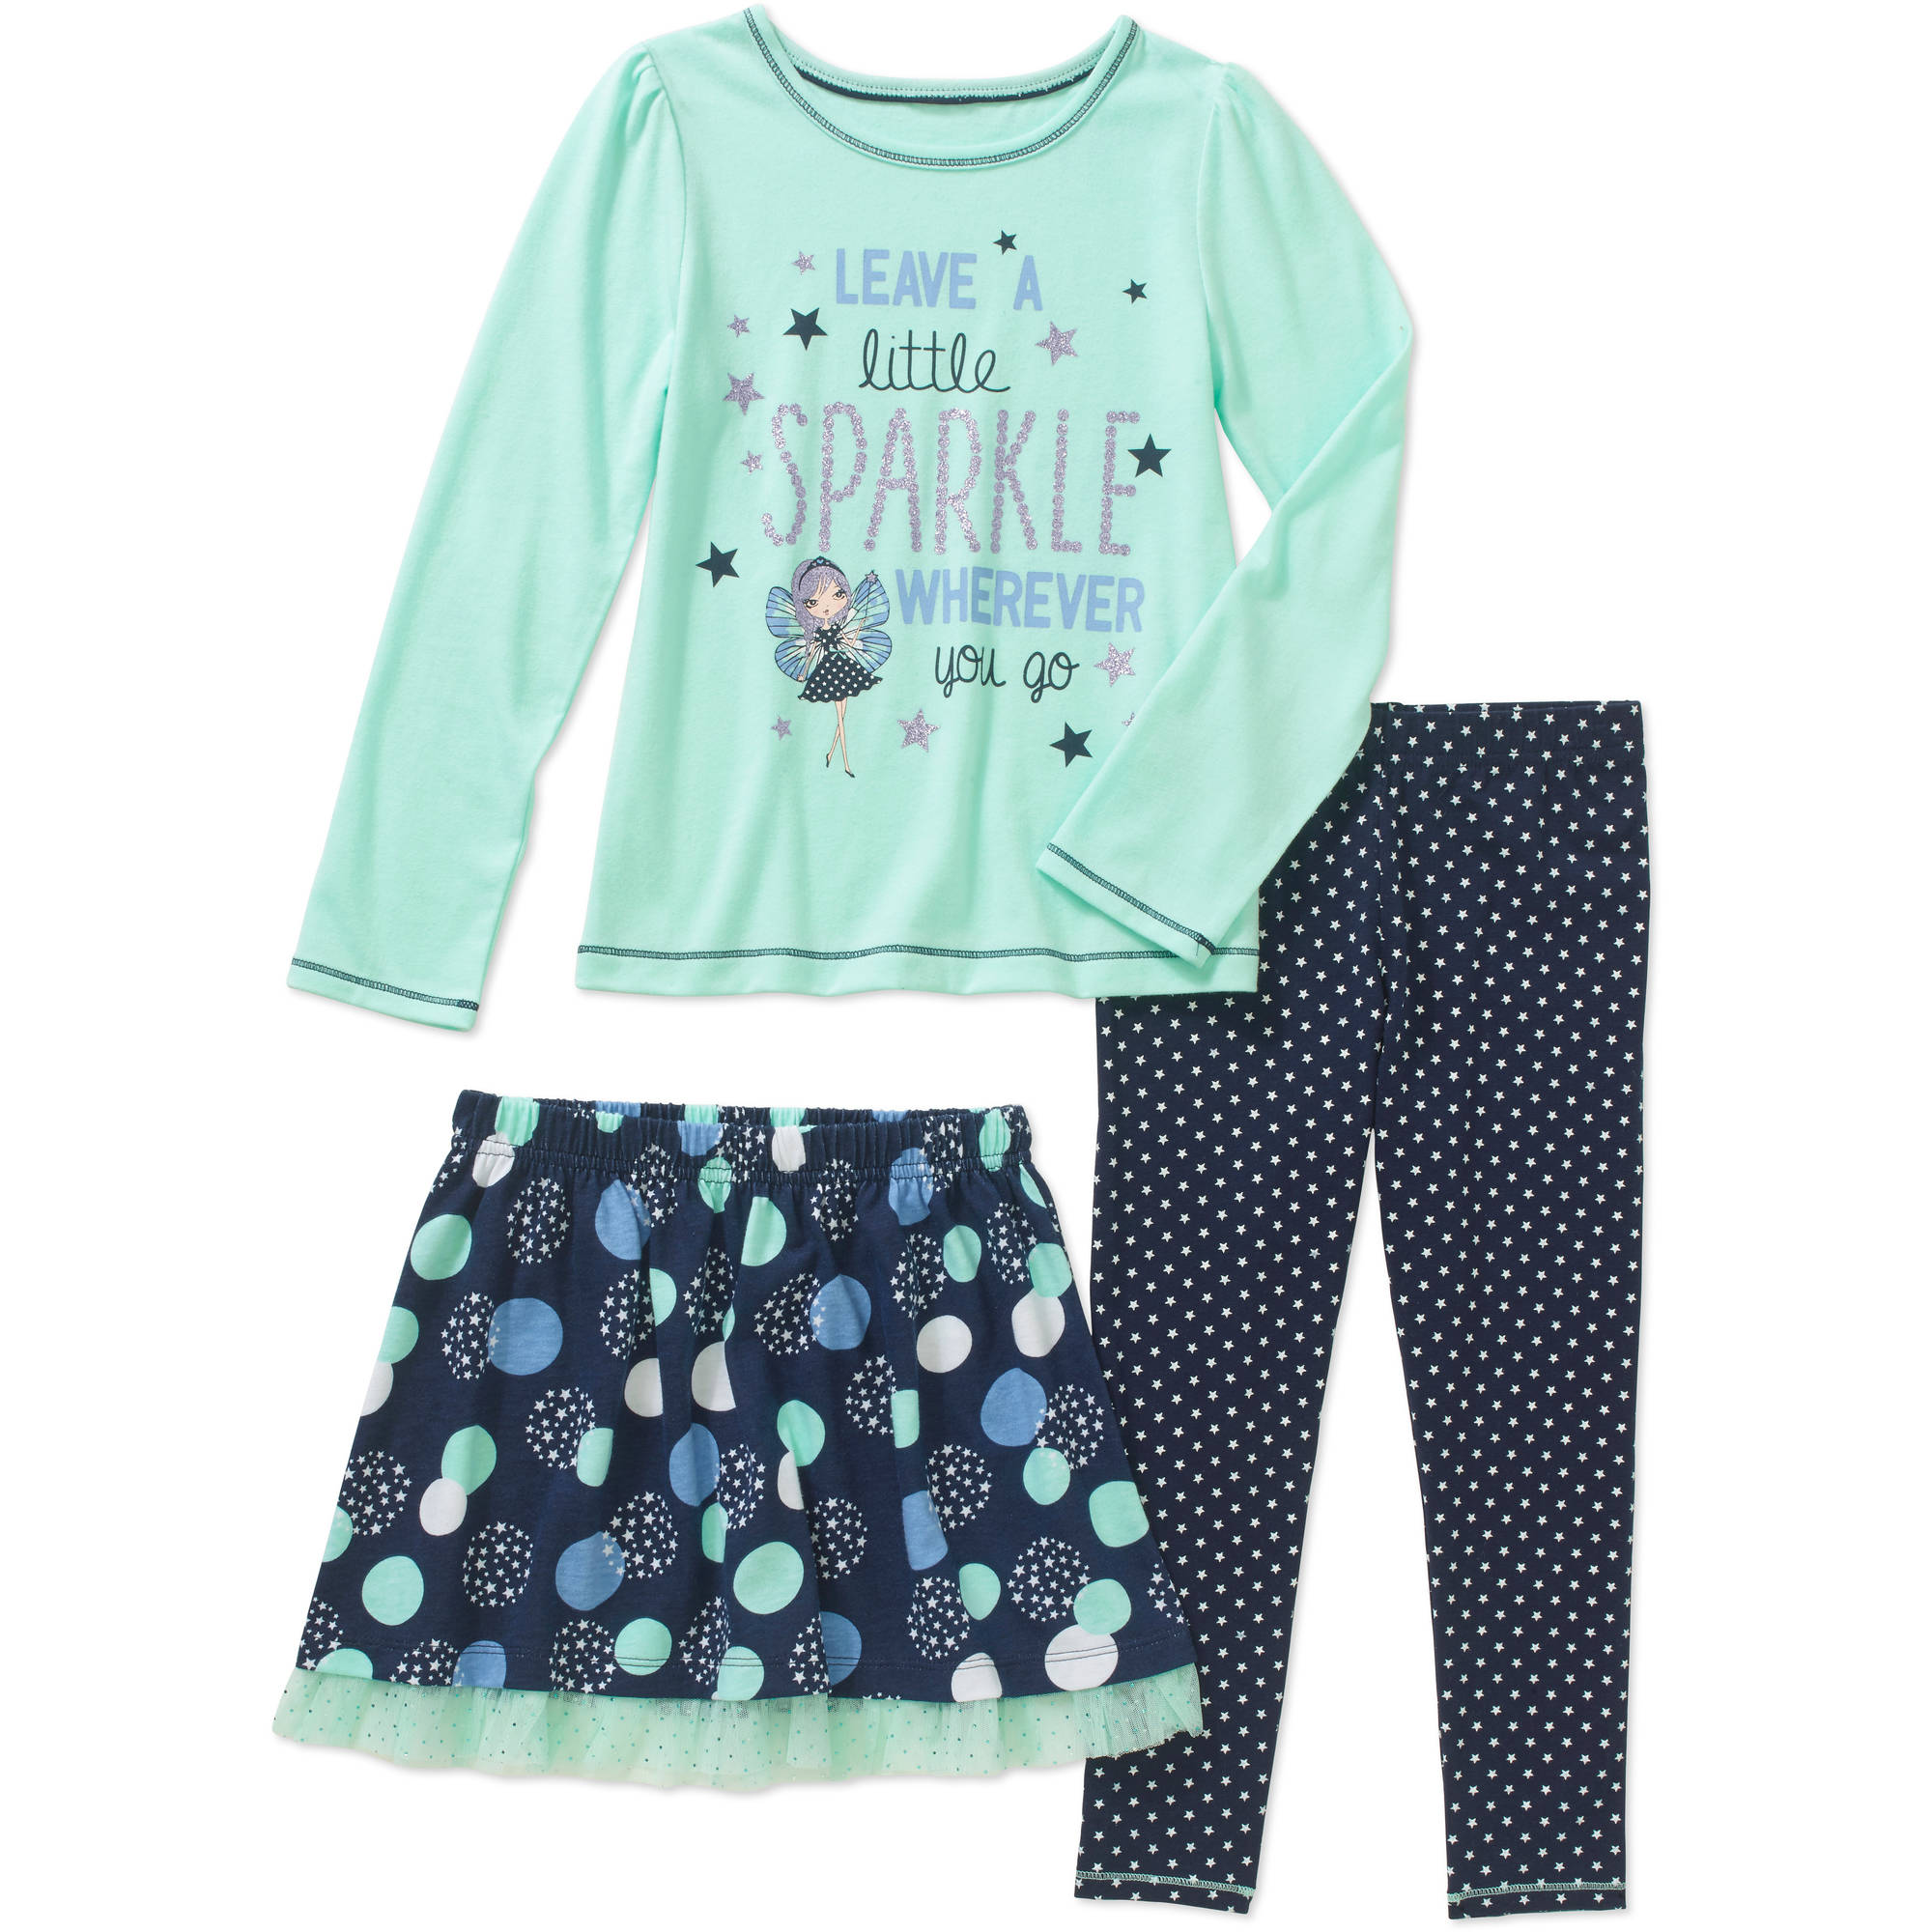 Healthex Girls' 3 Piece Set with Long Sleeve Top, Leggings, and Skirt